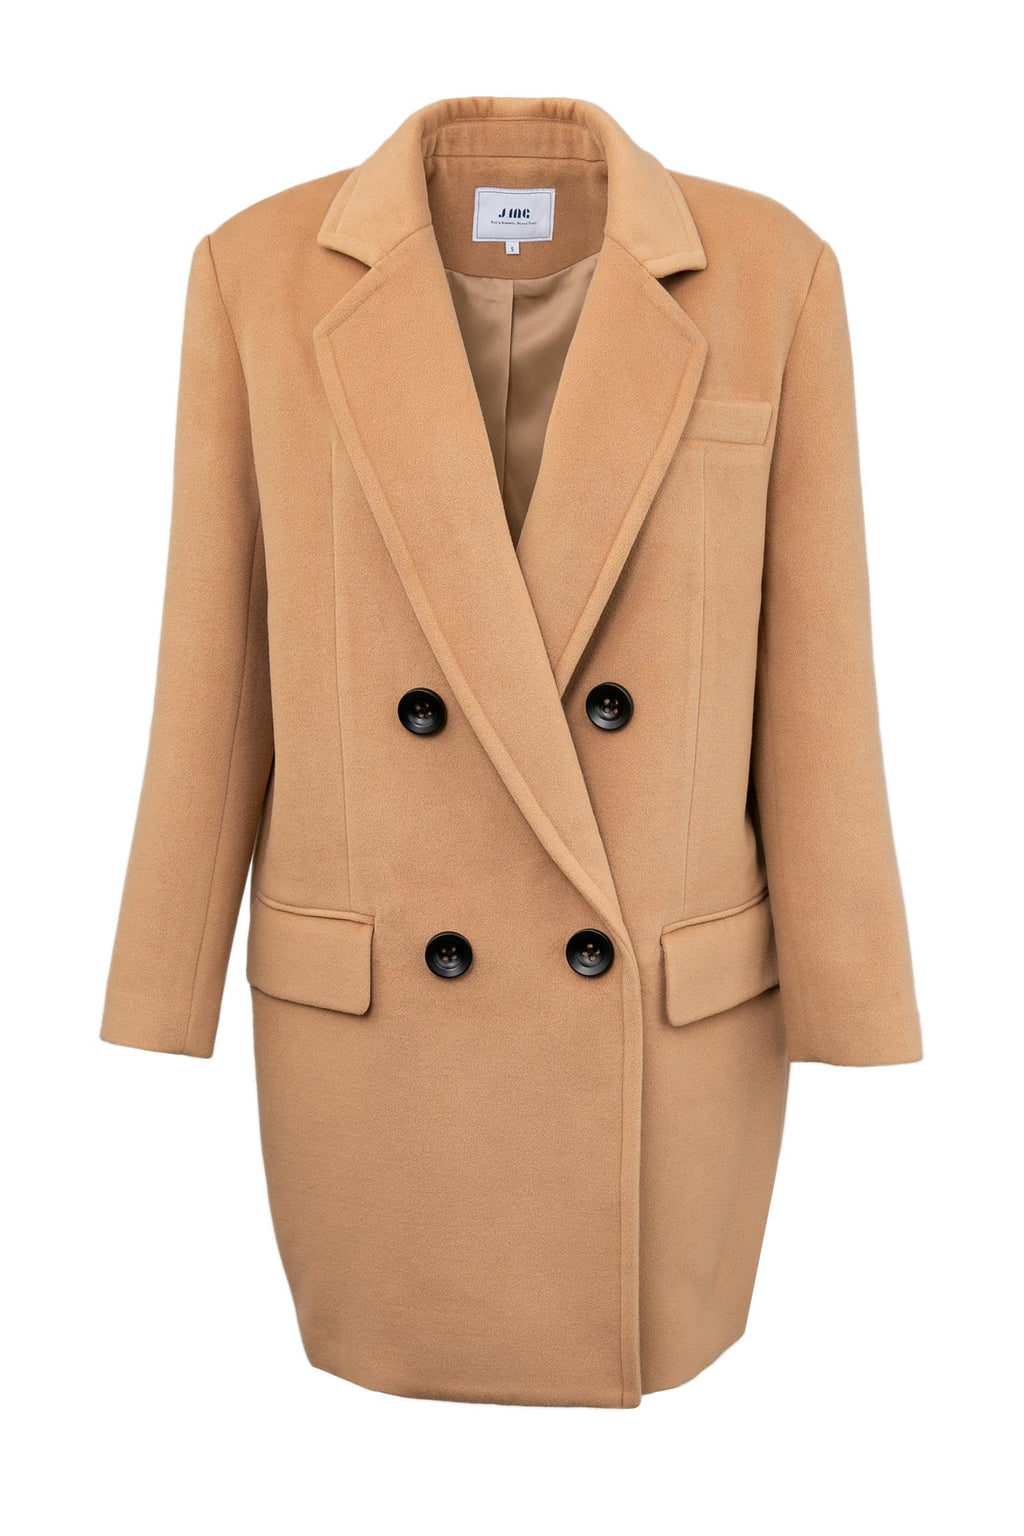 oakey brown oversize pea coat for women by j.ing